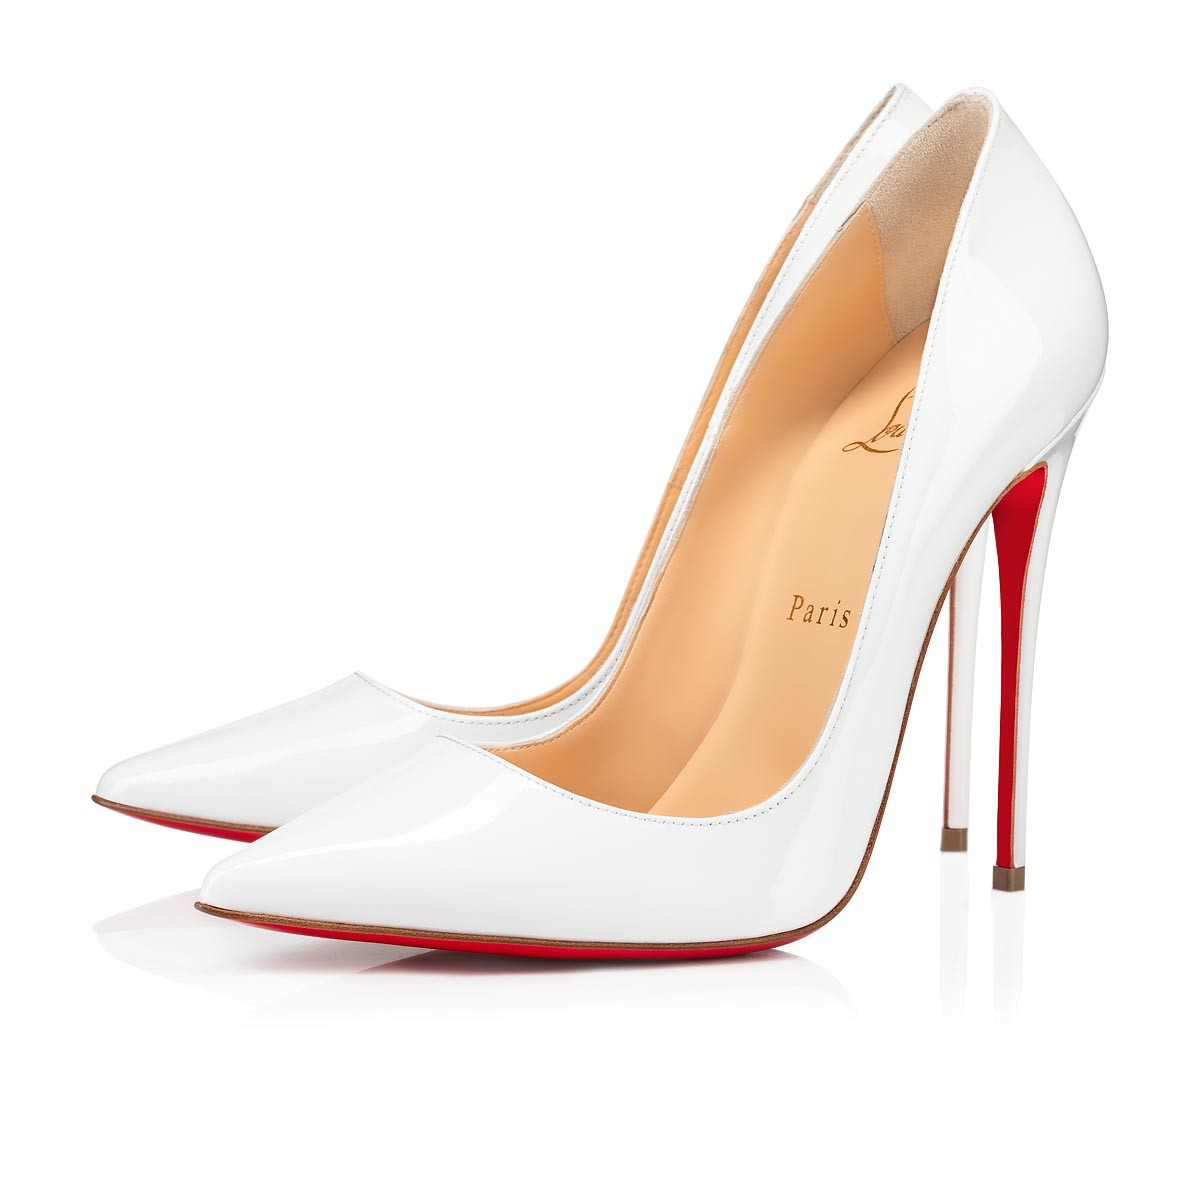 Souliers - So Kate - Christian Louboutin